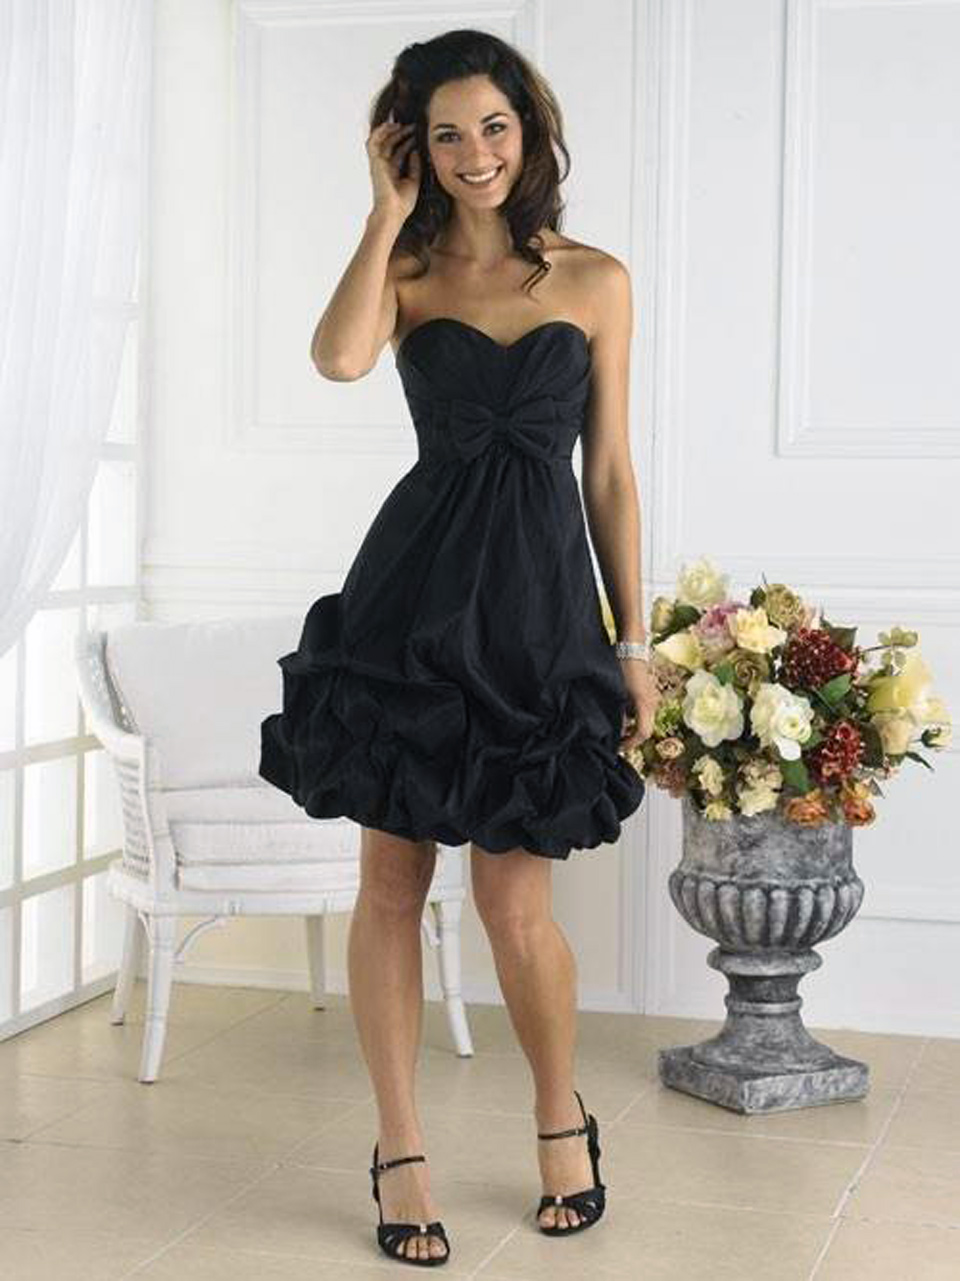 Black Puffy Short Dress 2013